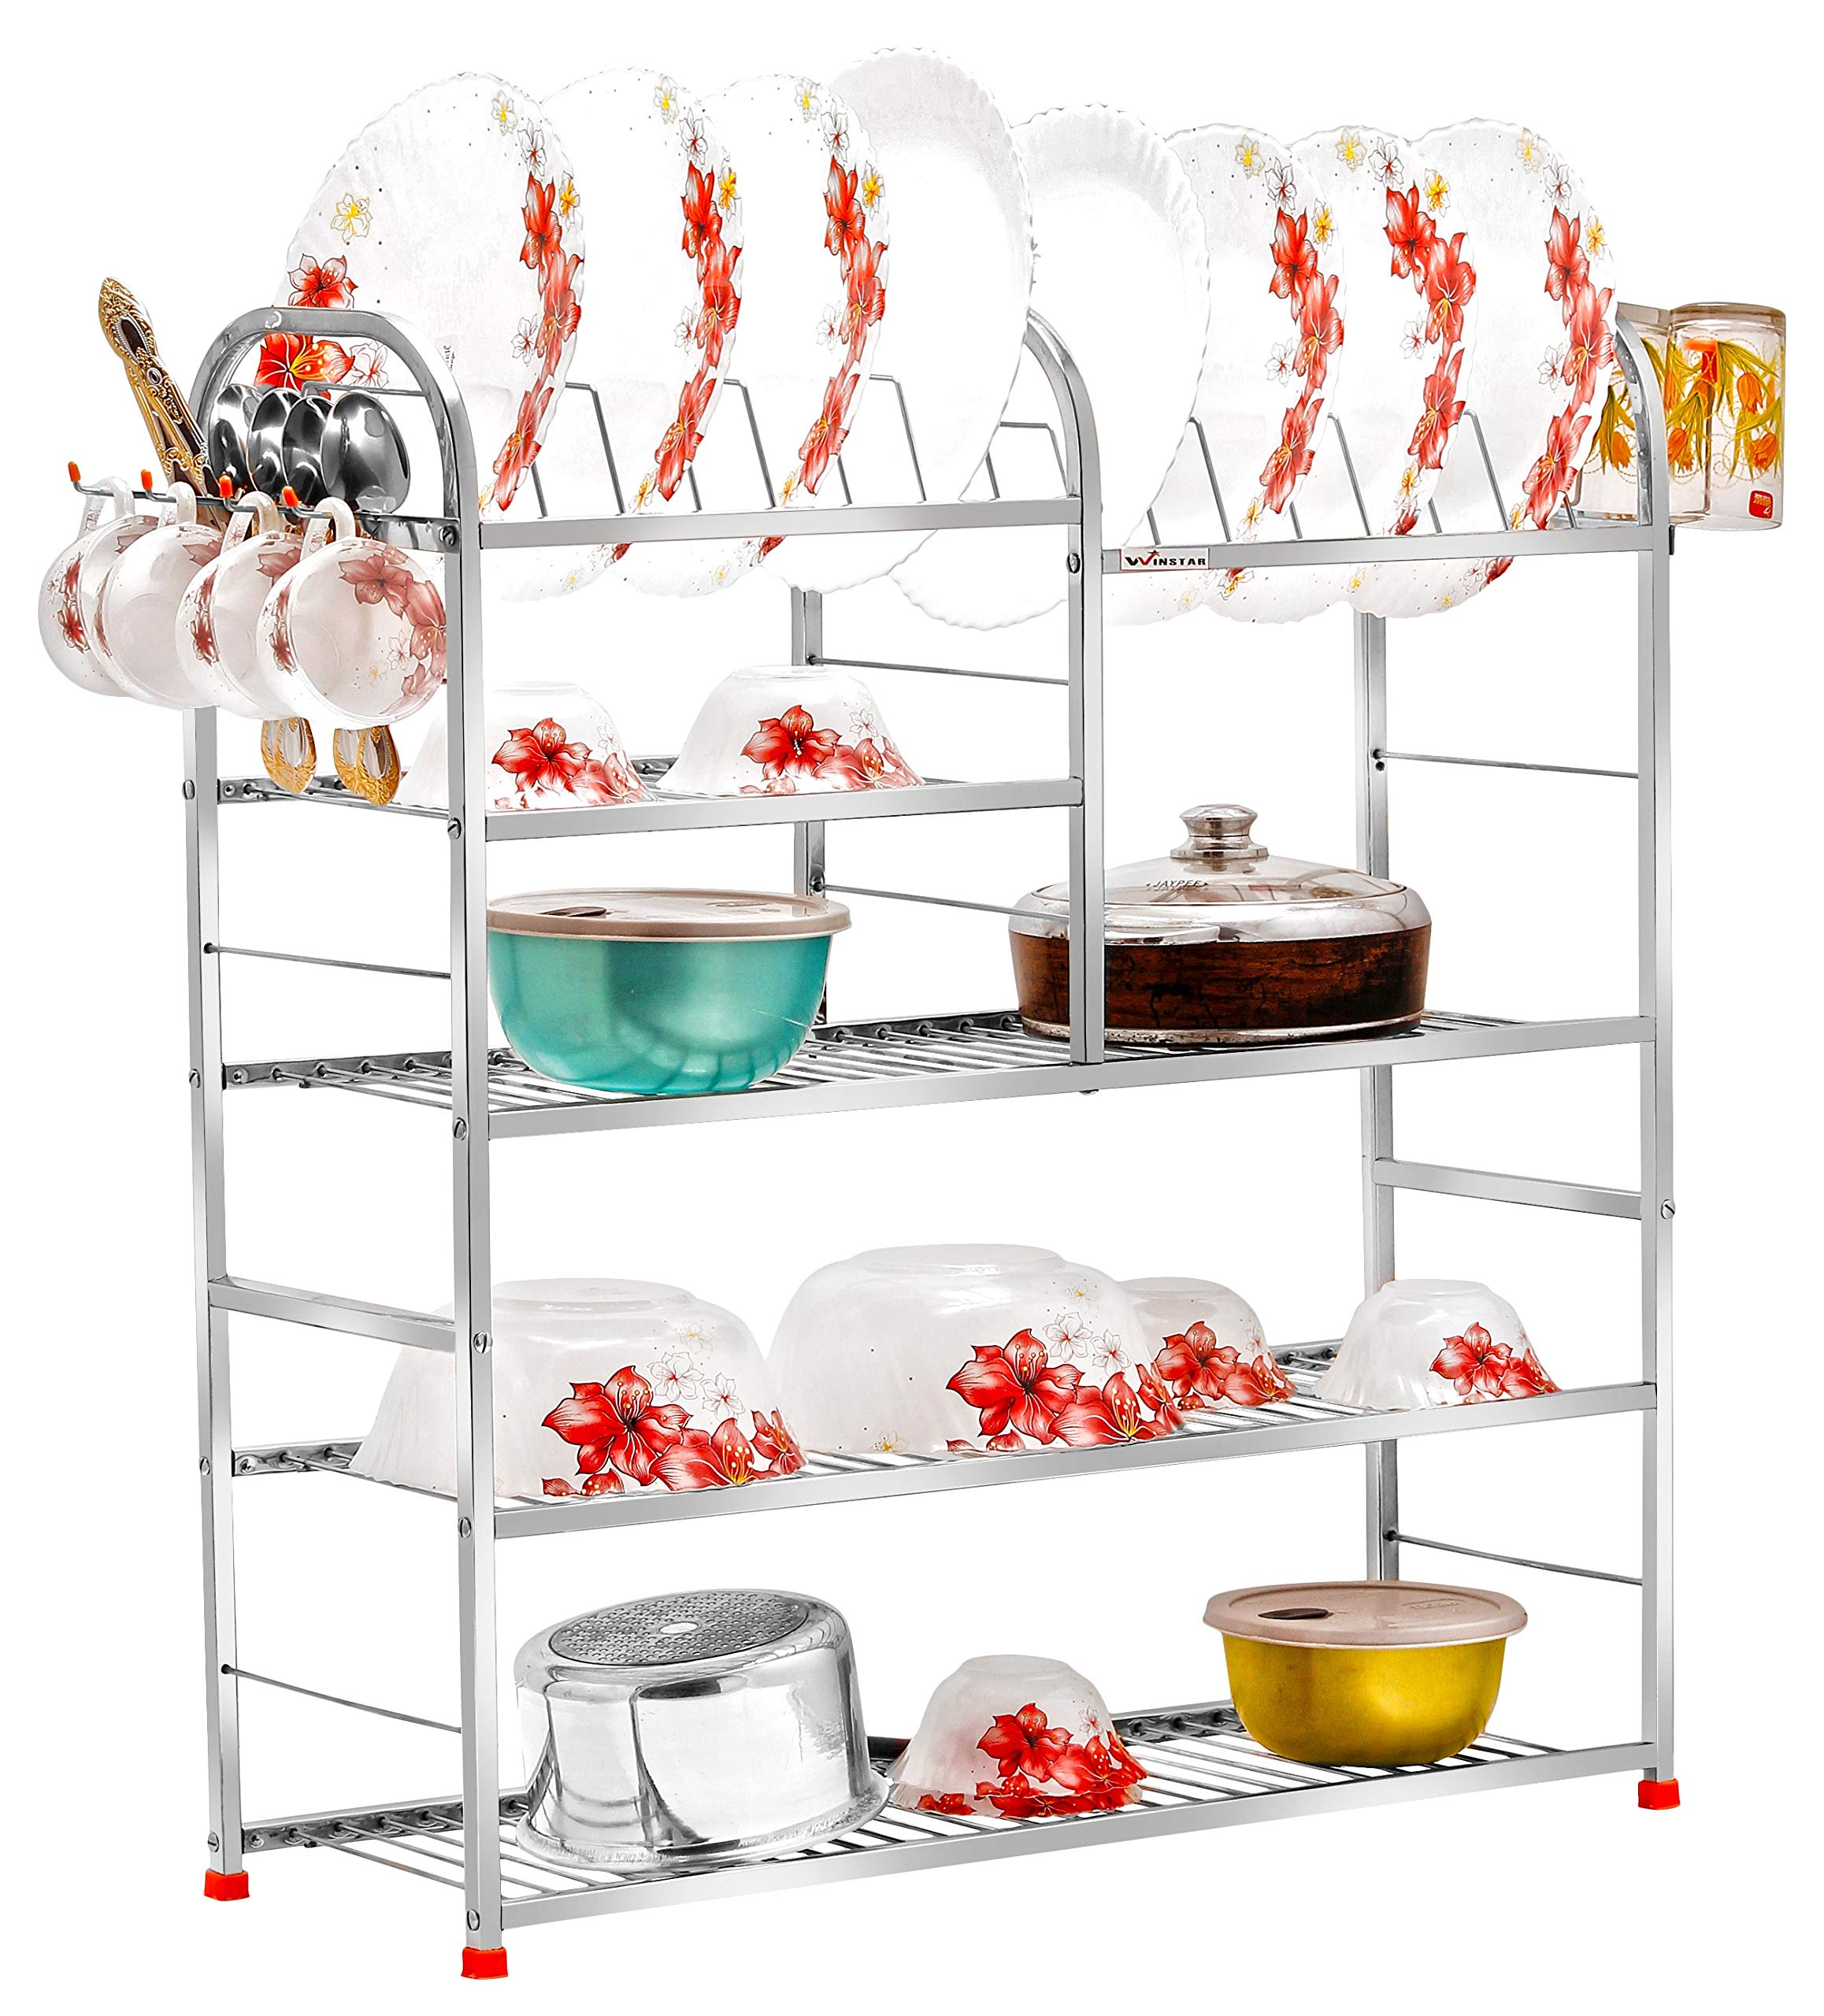 Winstar Stainless Steel 5 Shelf Wall Mount Kitchen Racks Dish Rack With Cutlery And Plate Kitchen Stand Modular Kitchen Bartan Stand Kitchen Organizer Items 30 X 31 Inches Buy